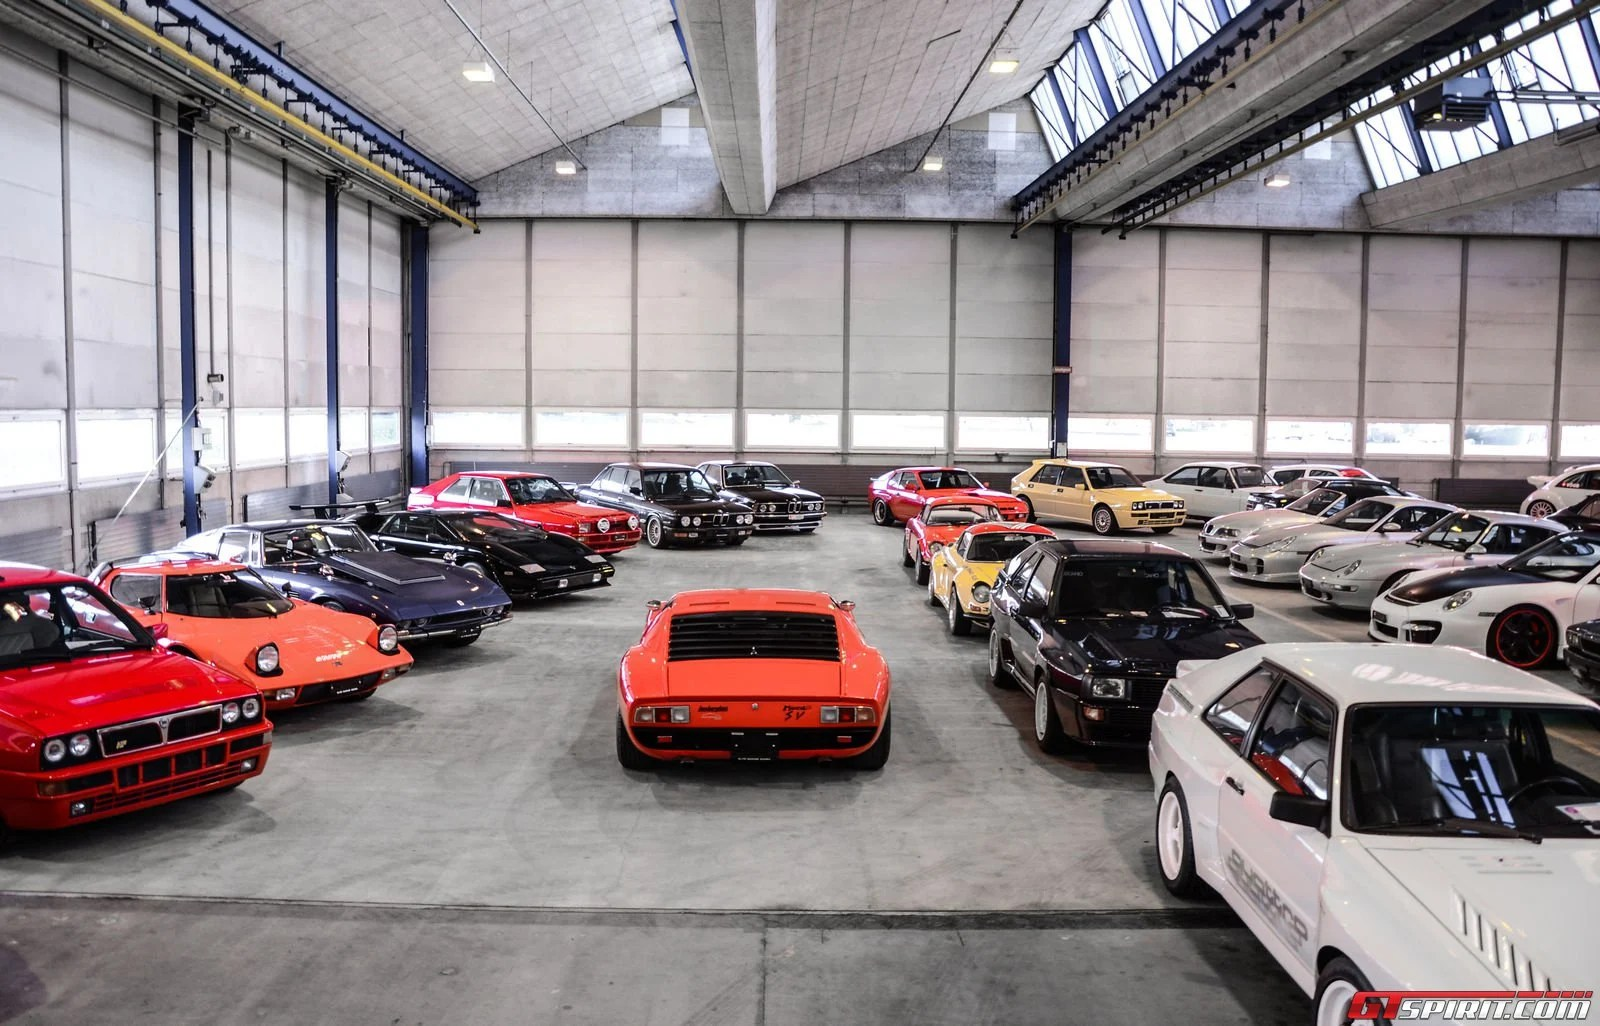 A peak inside a garage packed with 1100 sports luxury and